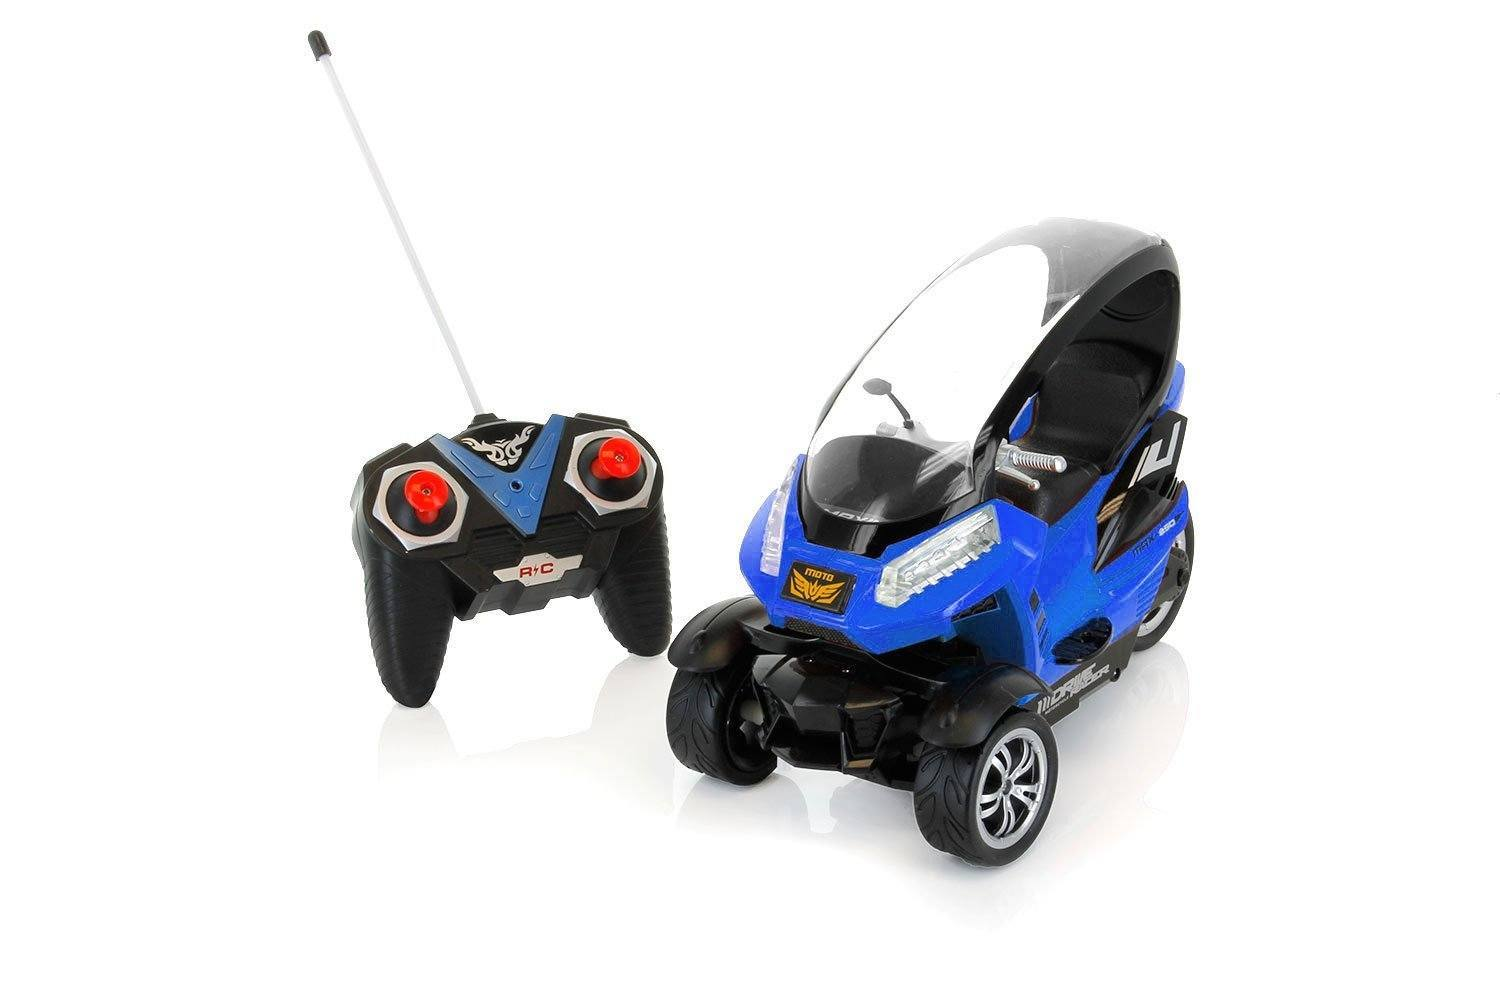 2015 Hot Holiday Kids Toys Tenergy T100 110 Scale RC ATV 2015 images